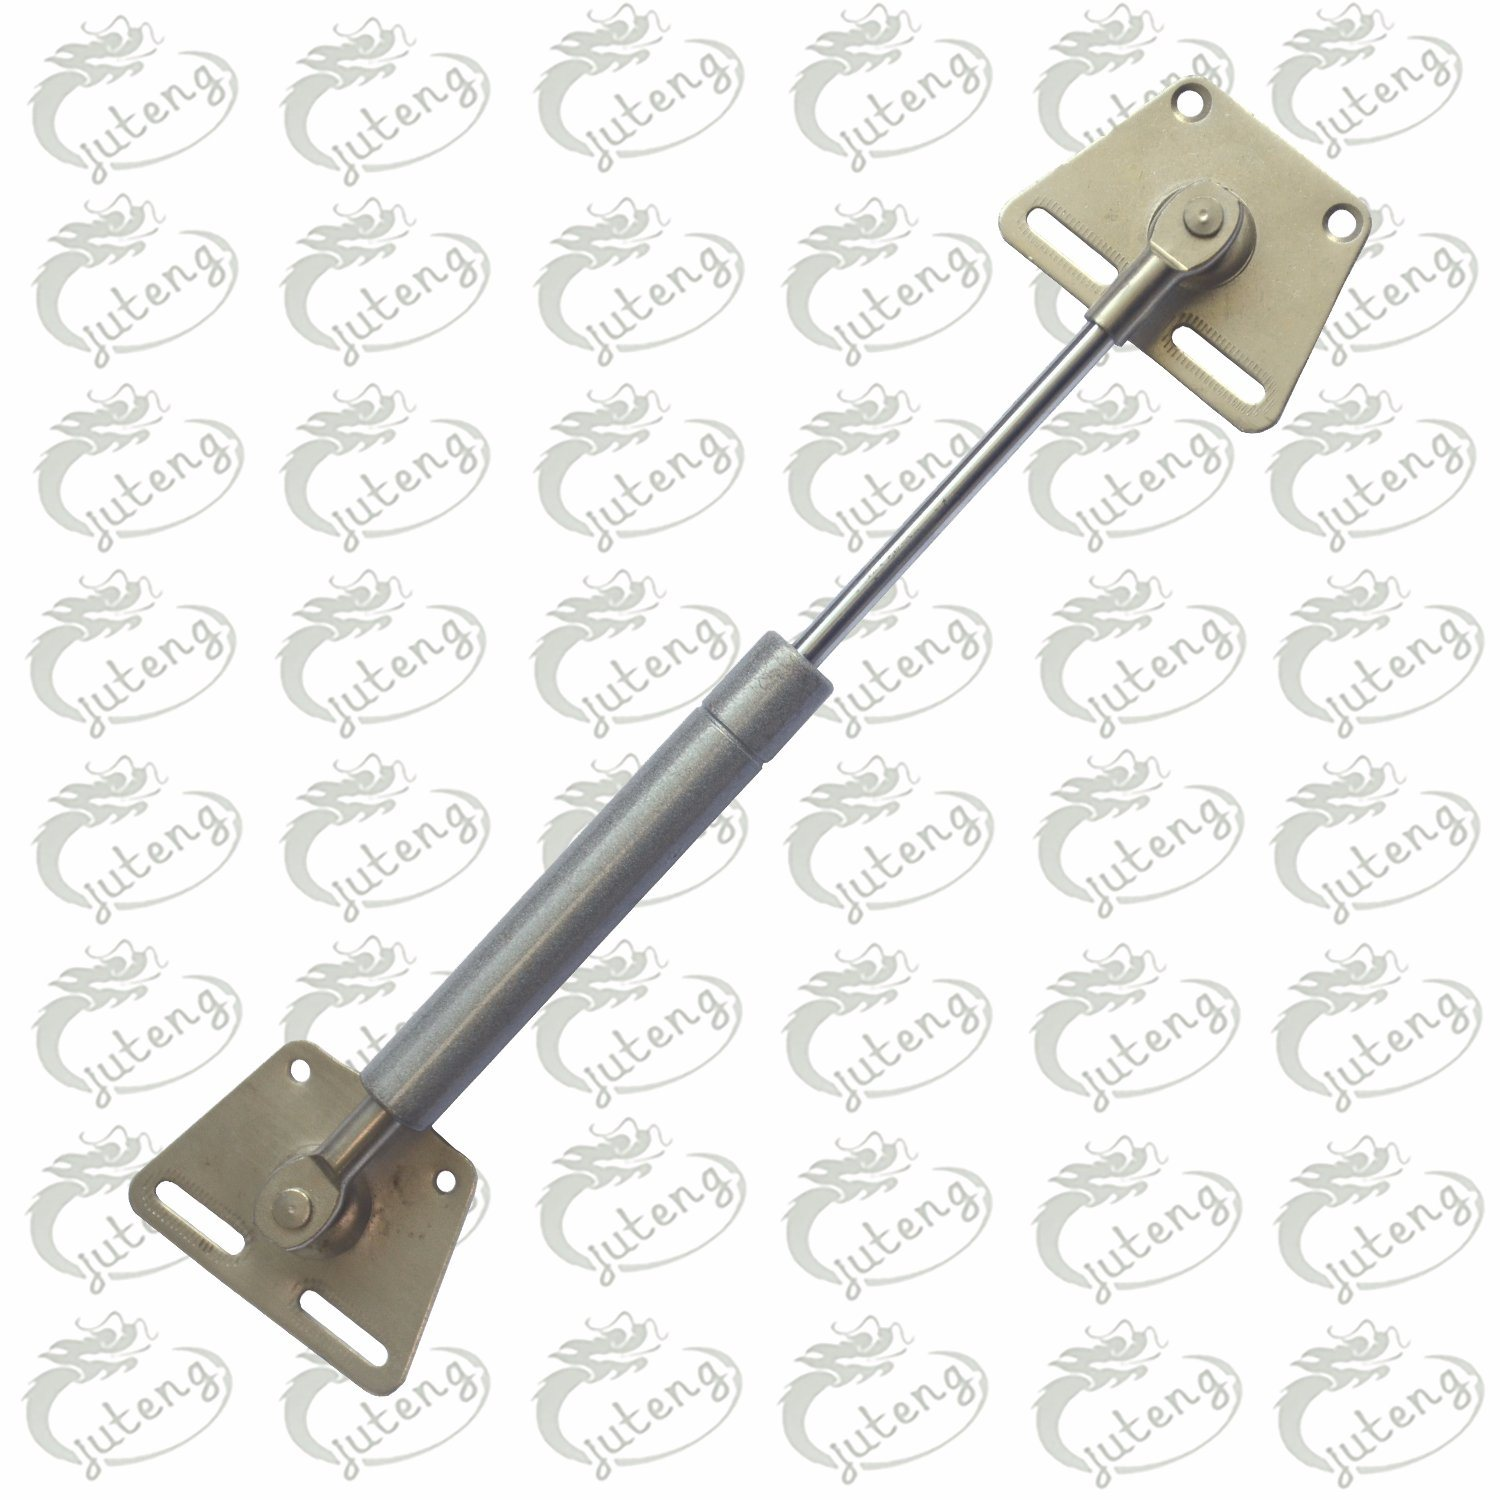 Adjustable Gas Spring for furniture Lift Gas Spring For Cabinet from China Manufacturers - page 1.  sc 1 st  Changzhou Juteng Gas Spring Co. Ltd. & Adjustable Gas Spring for furniture Lift Gas Spring For Cabinet ...